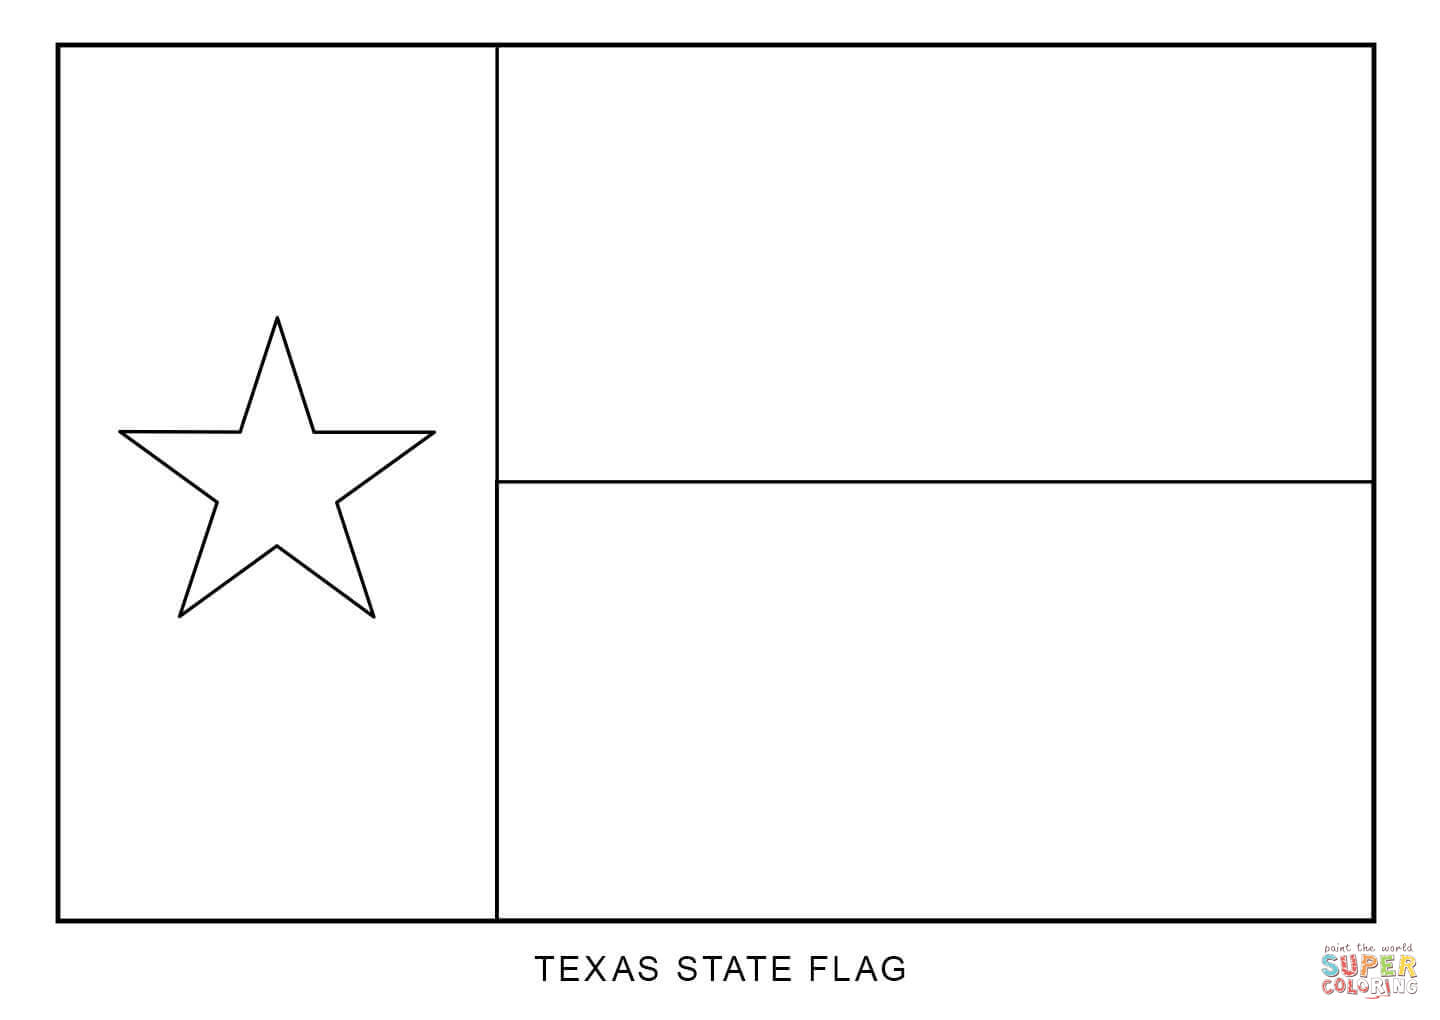 texas state seal coloring page awesome north dakota state seal coloring page top free coloring page seal texas state